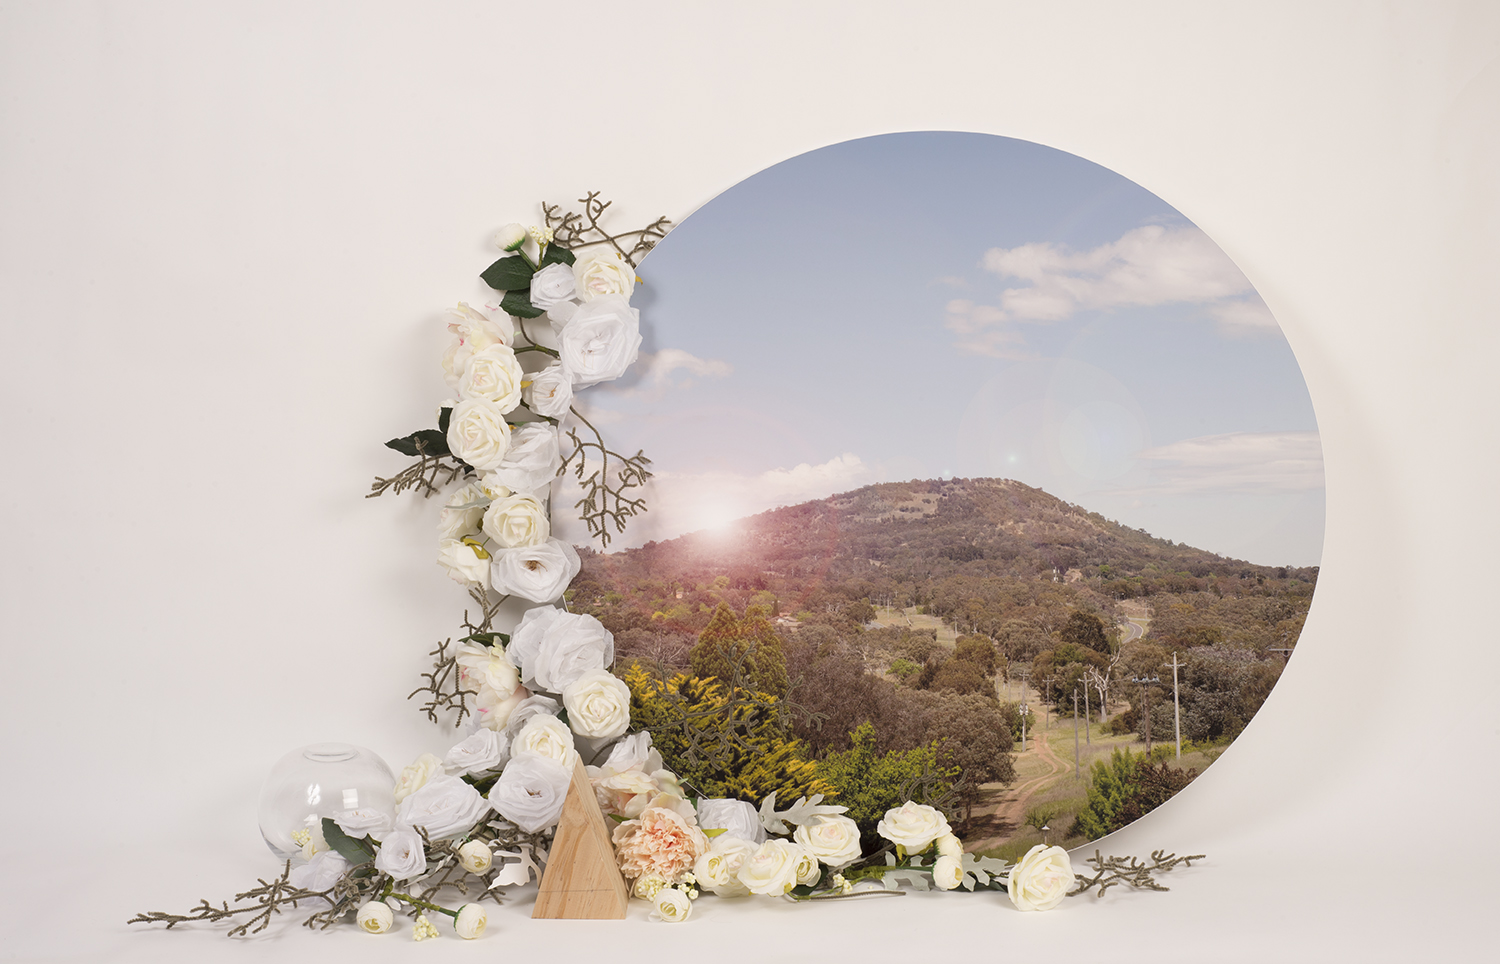 Circle, 2017-2018, Mounted photograph, paper, thread, pipe cleaners, pine, glass, floristy wire, floristry tape, 120 x 80 x 20 cm, image credit: Camille Serisier